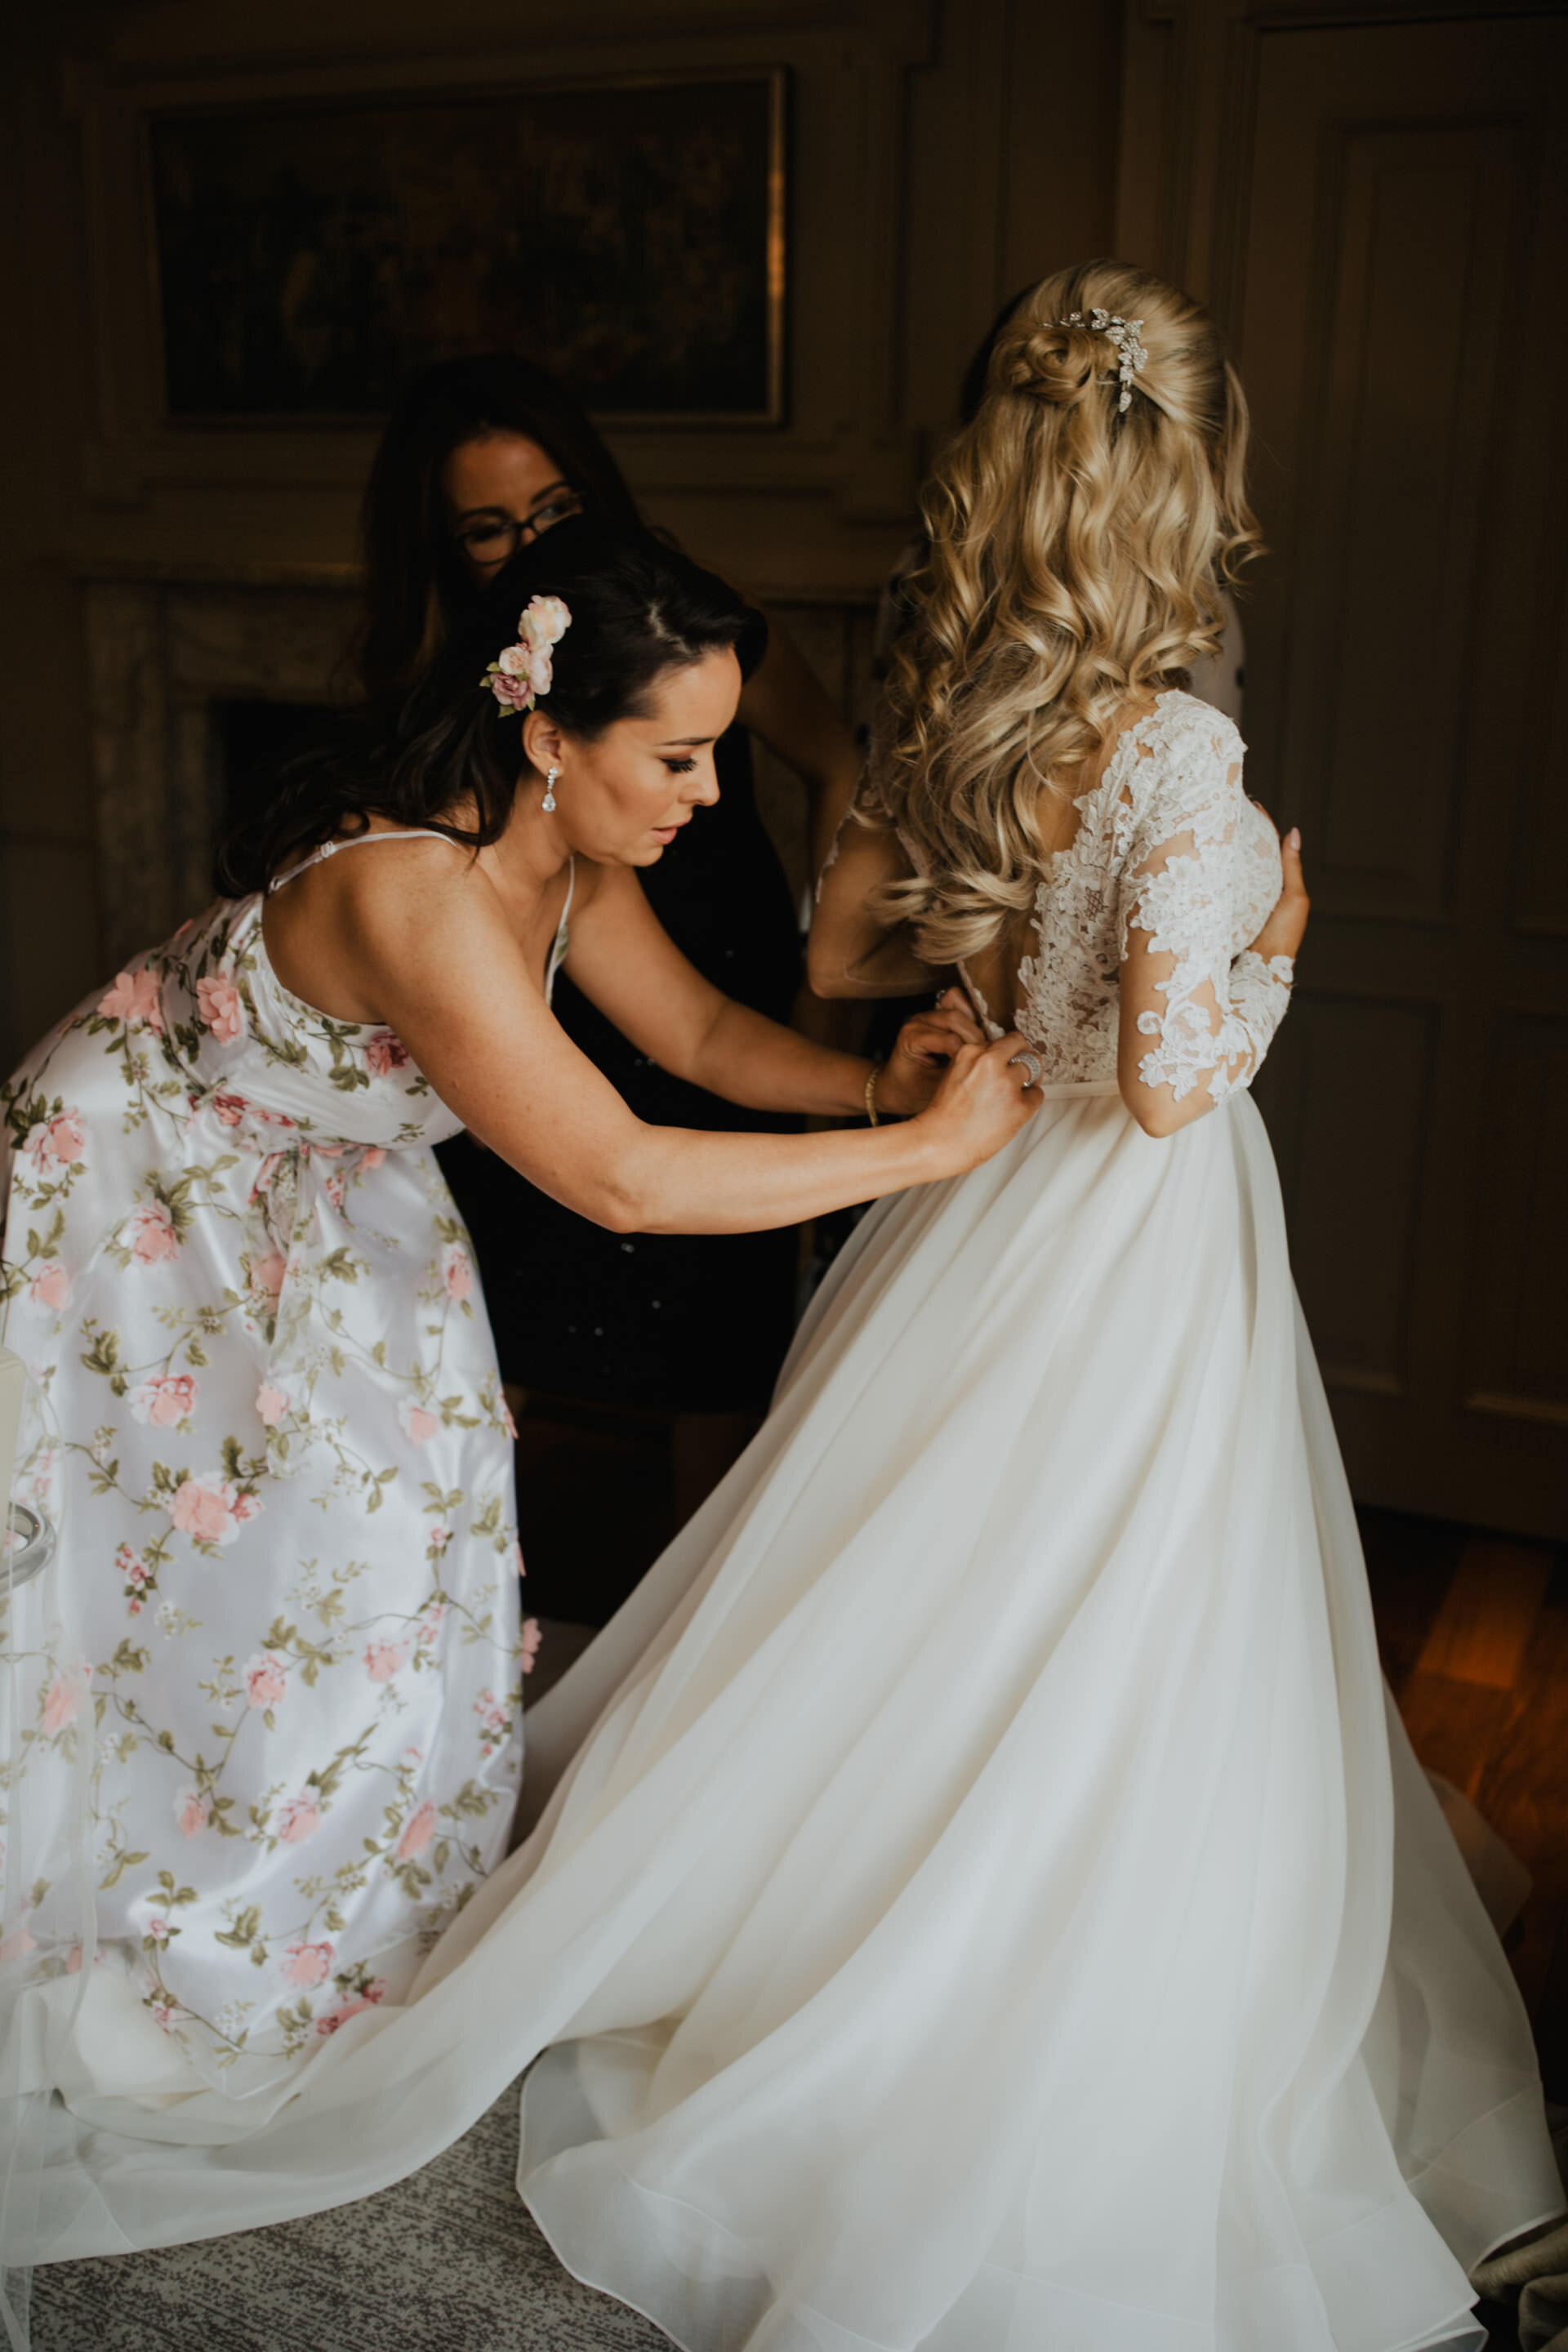 c&s_the_westbury_wedding_photographer_livia_figueiredo_4.jpg